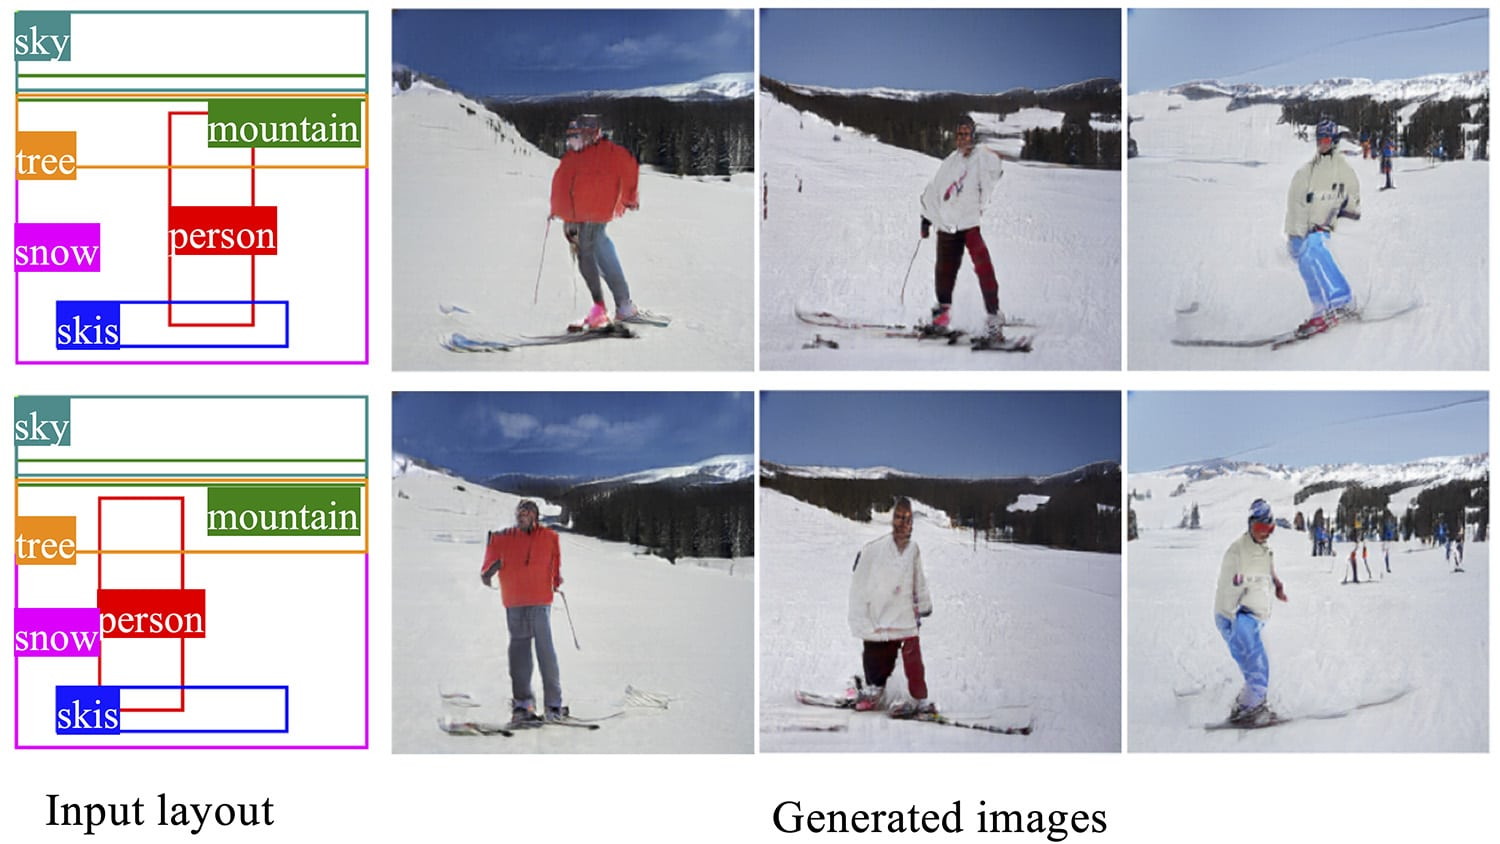 Several examples of AI-generated images including identical backgrounds and the same figures, but in different poses.